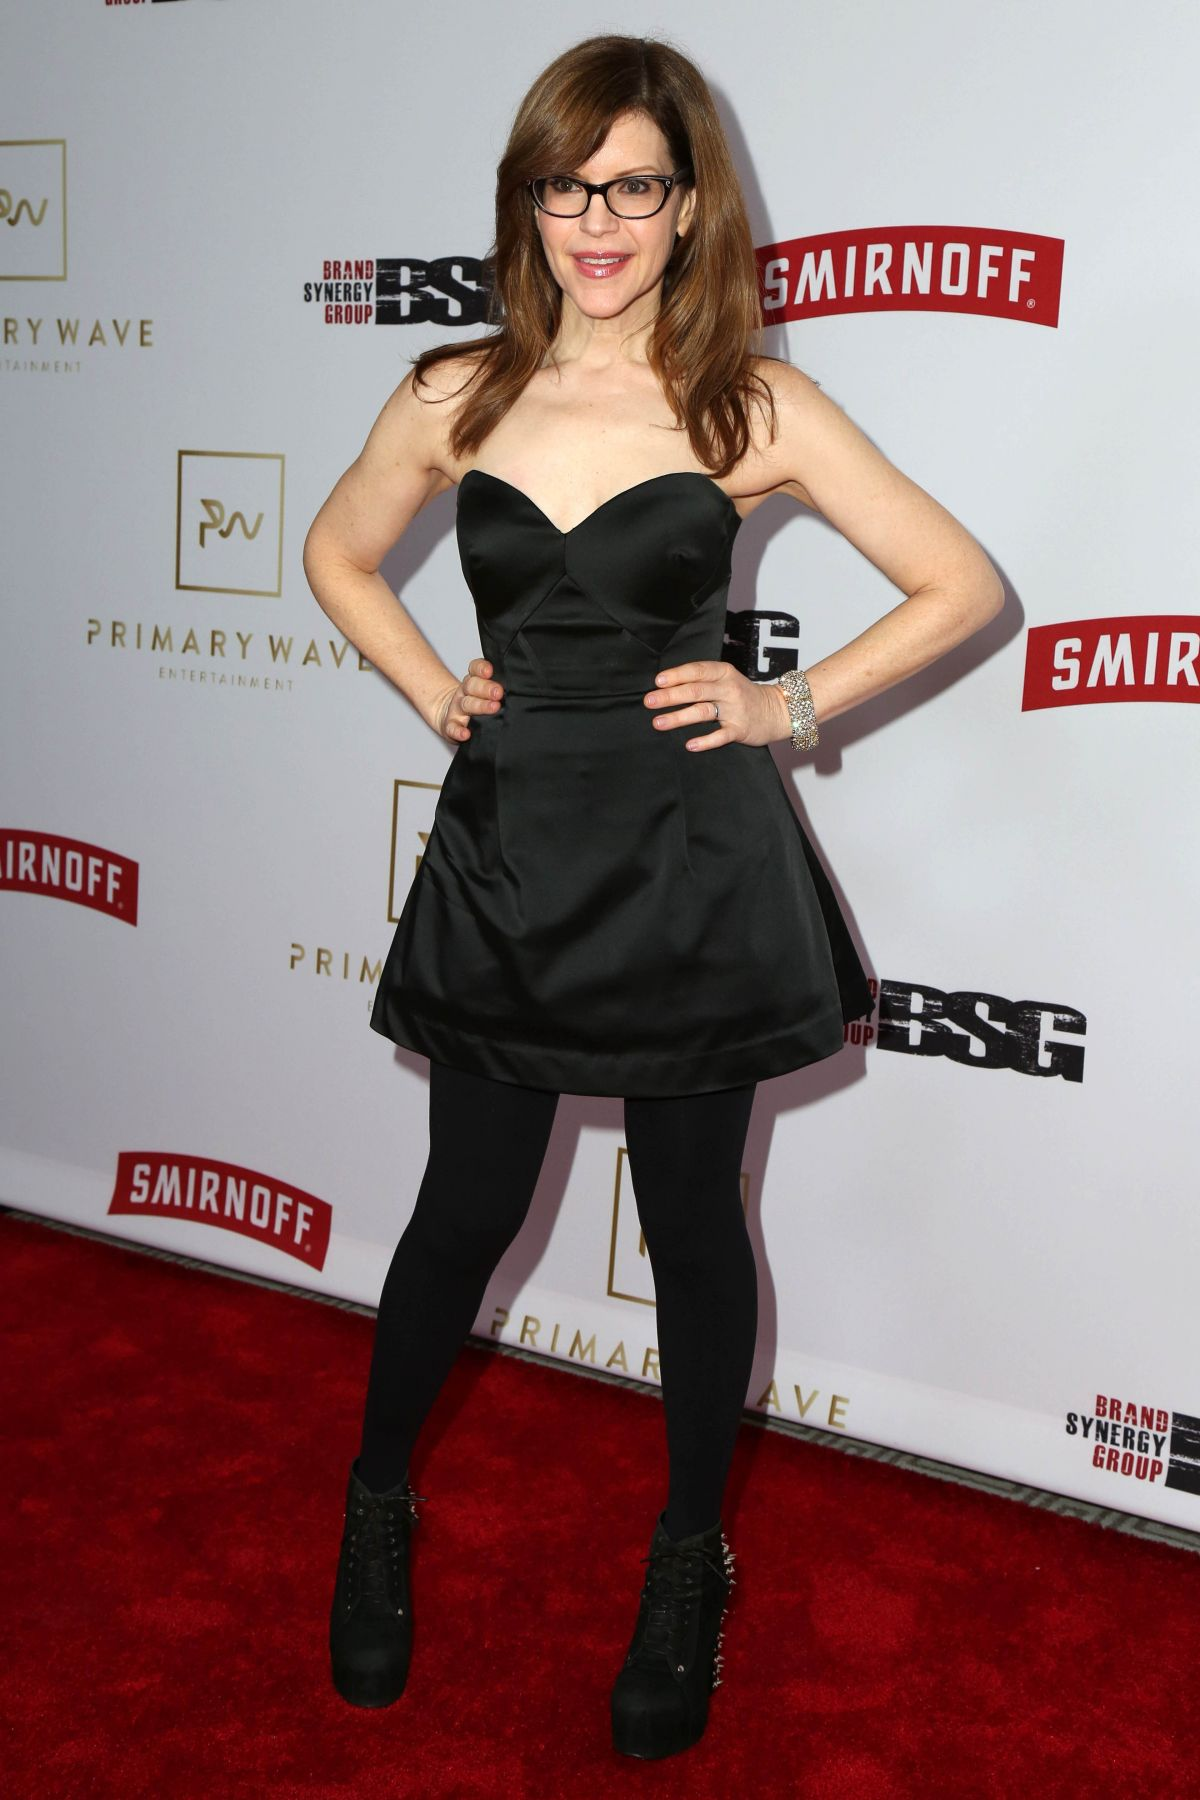 LISA LOEB at Primary Wave 11th Annual Pre-Grammy Party in West Hollywood 02/11/2017